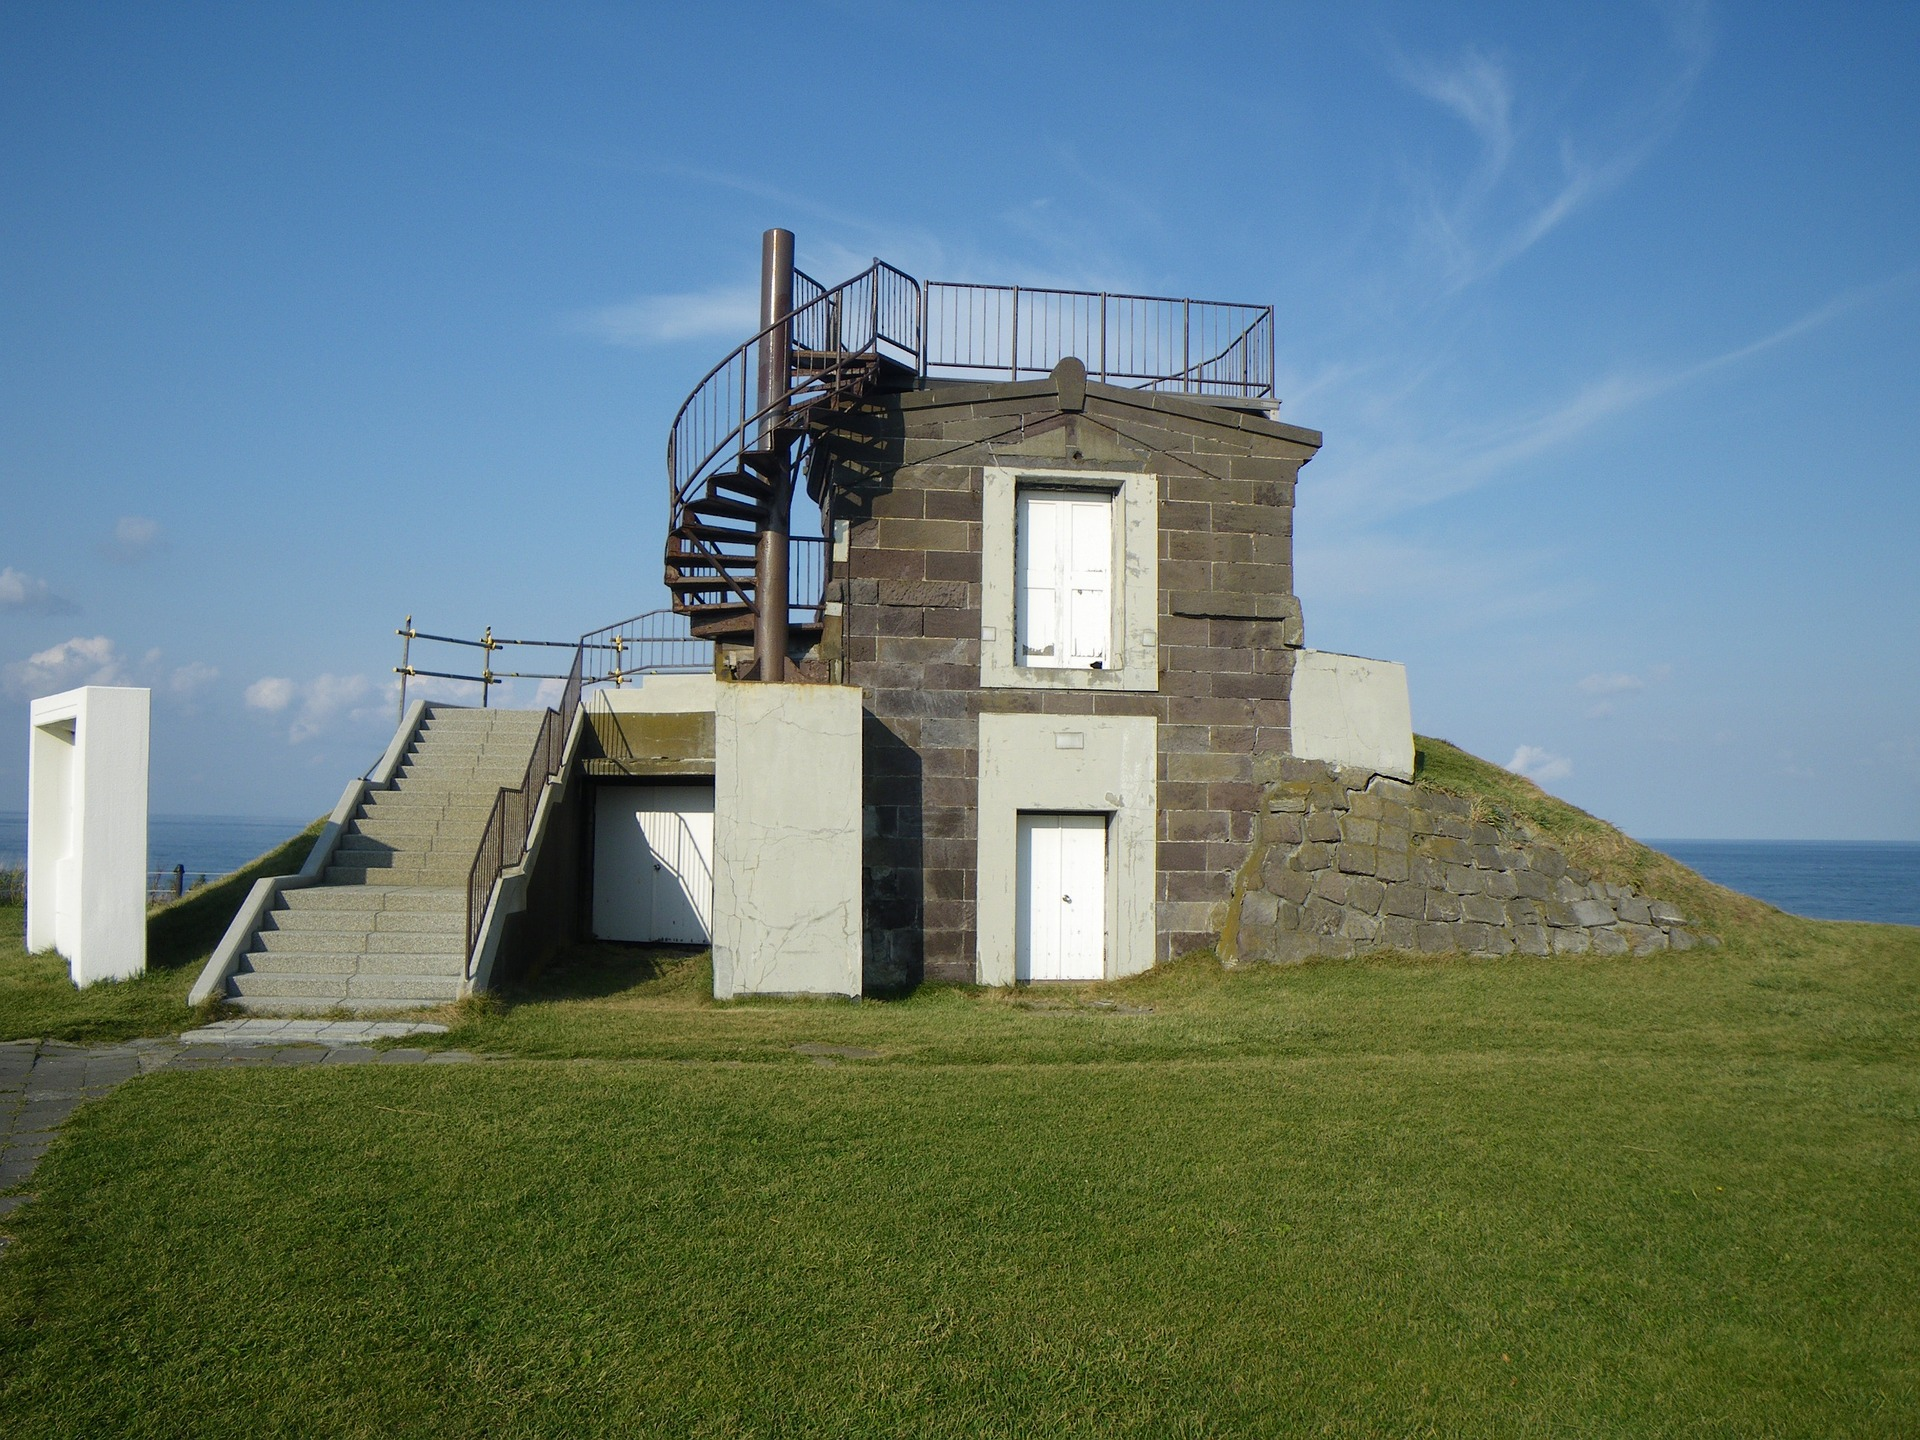 cape soya naval watch tower